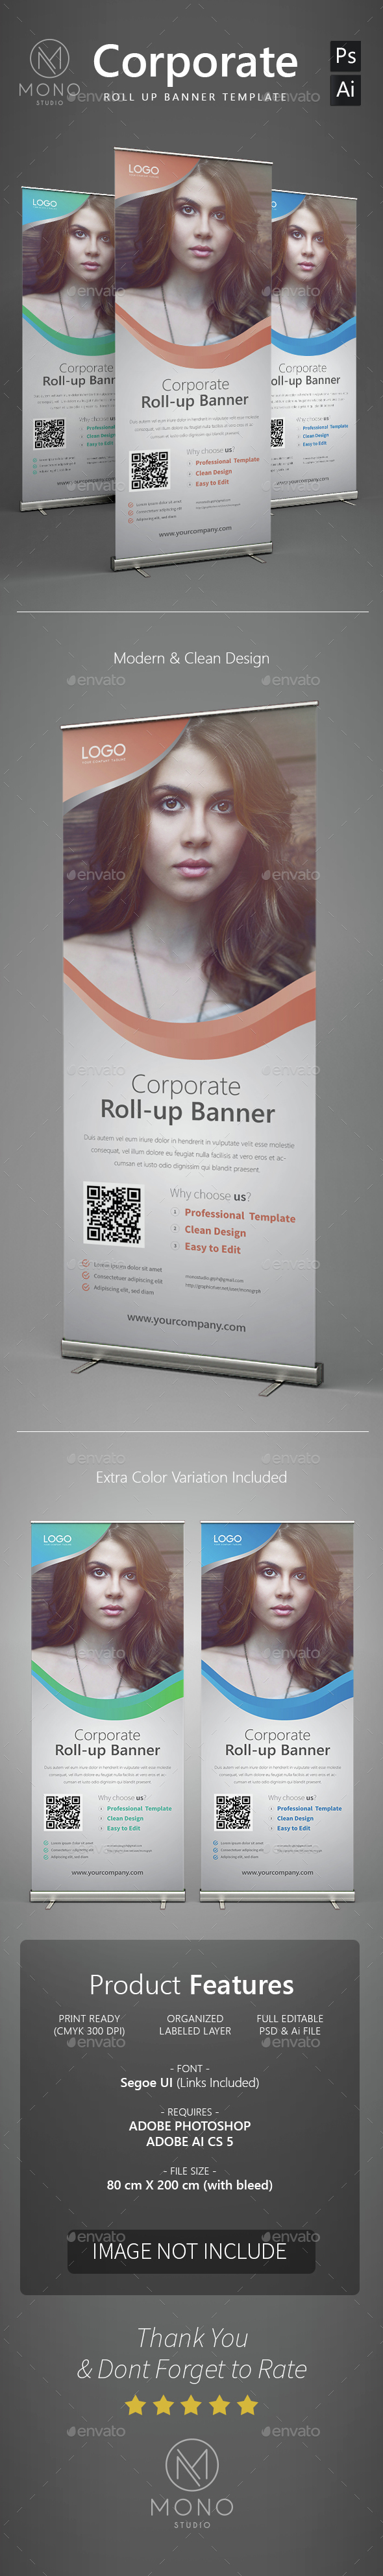 Corporate Roll Up Banner 3 - Signage Print Templates